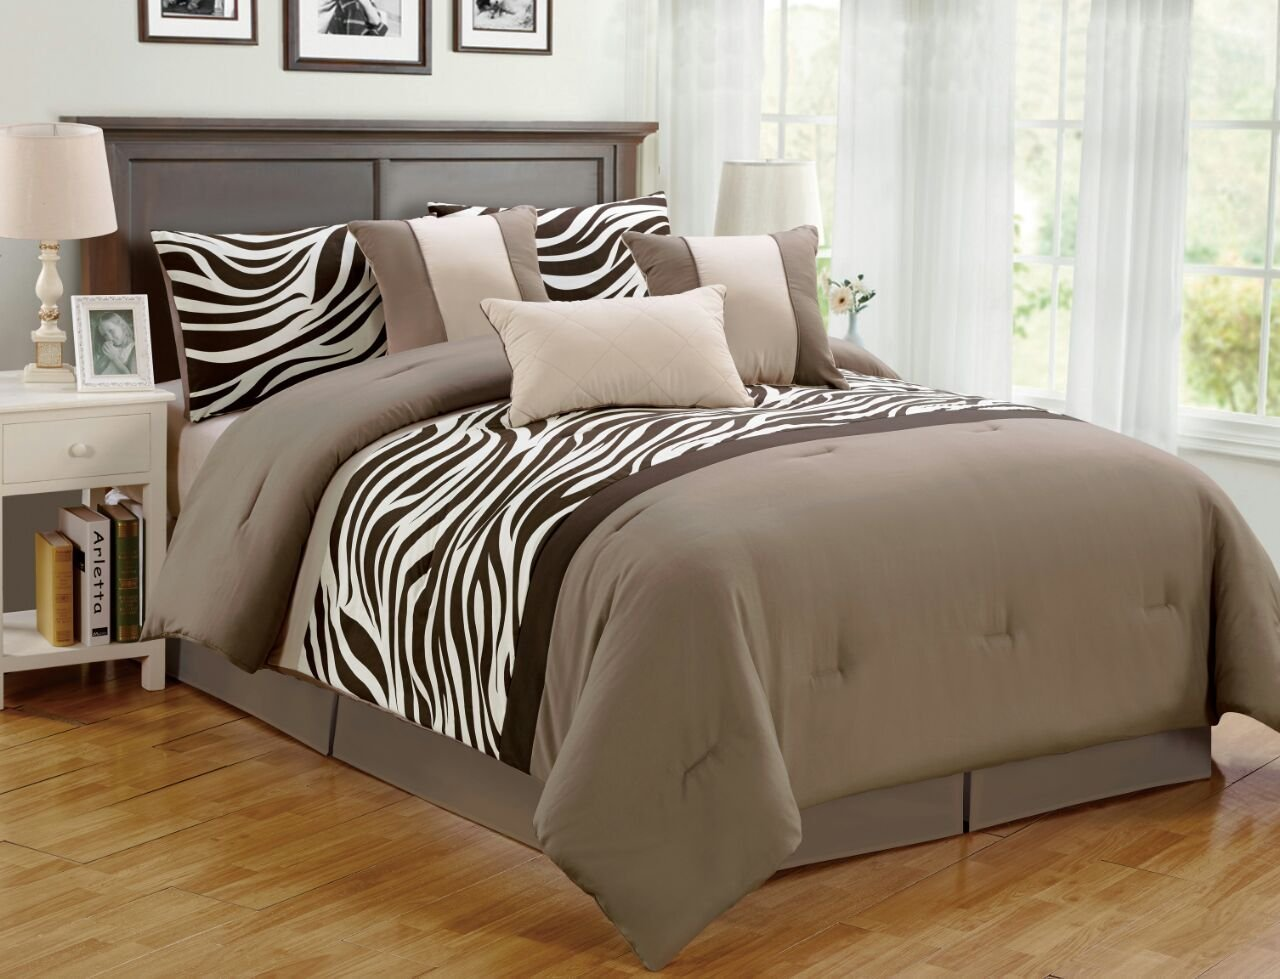 Best 7 Pieces Comforter Set Bed Bag Oversize Zebra Animal With Pictures